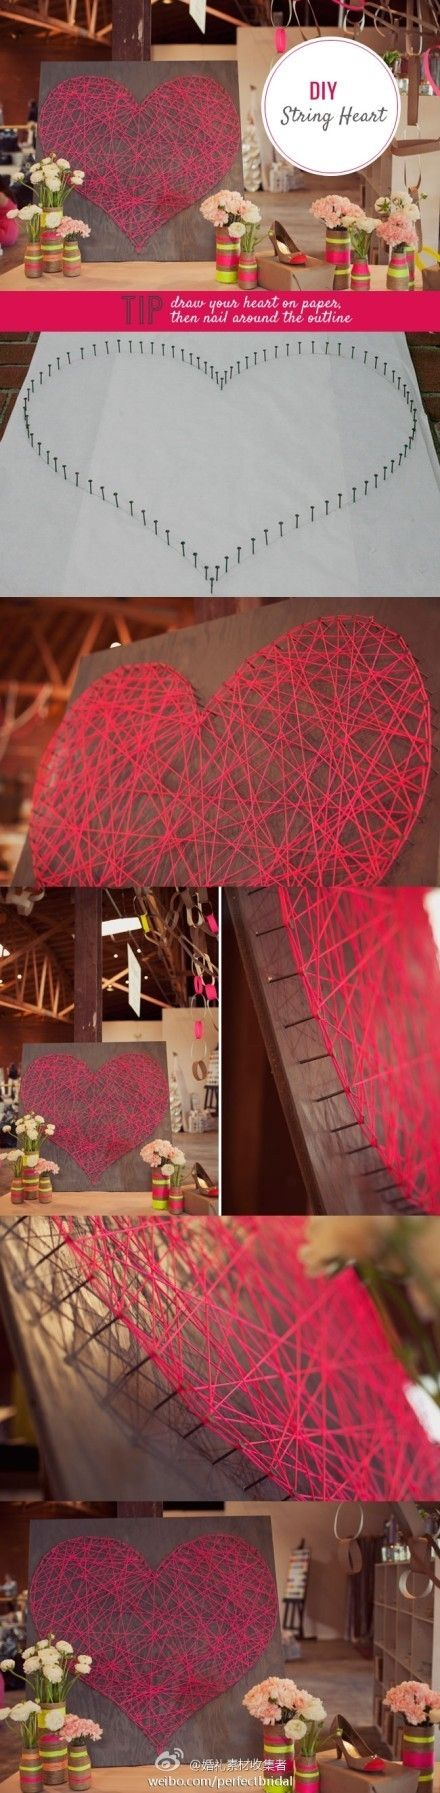 As an added element in the room, I love this DIY string art heart. I'm planning to make this for my daughter's big girl room and I think it would add a nice touch in this space, too.